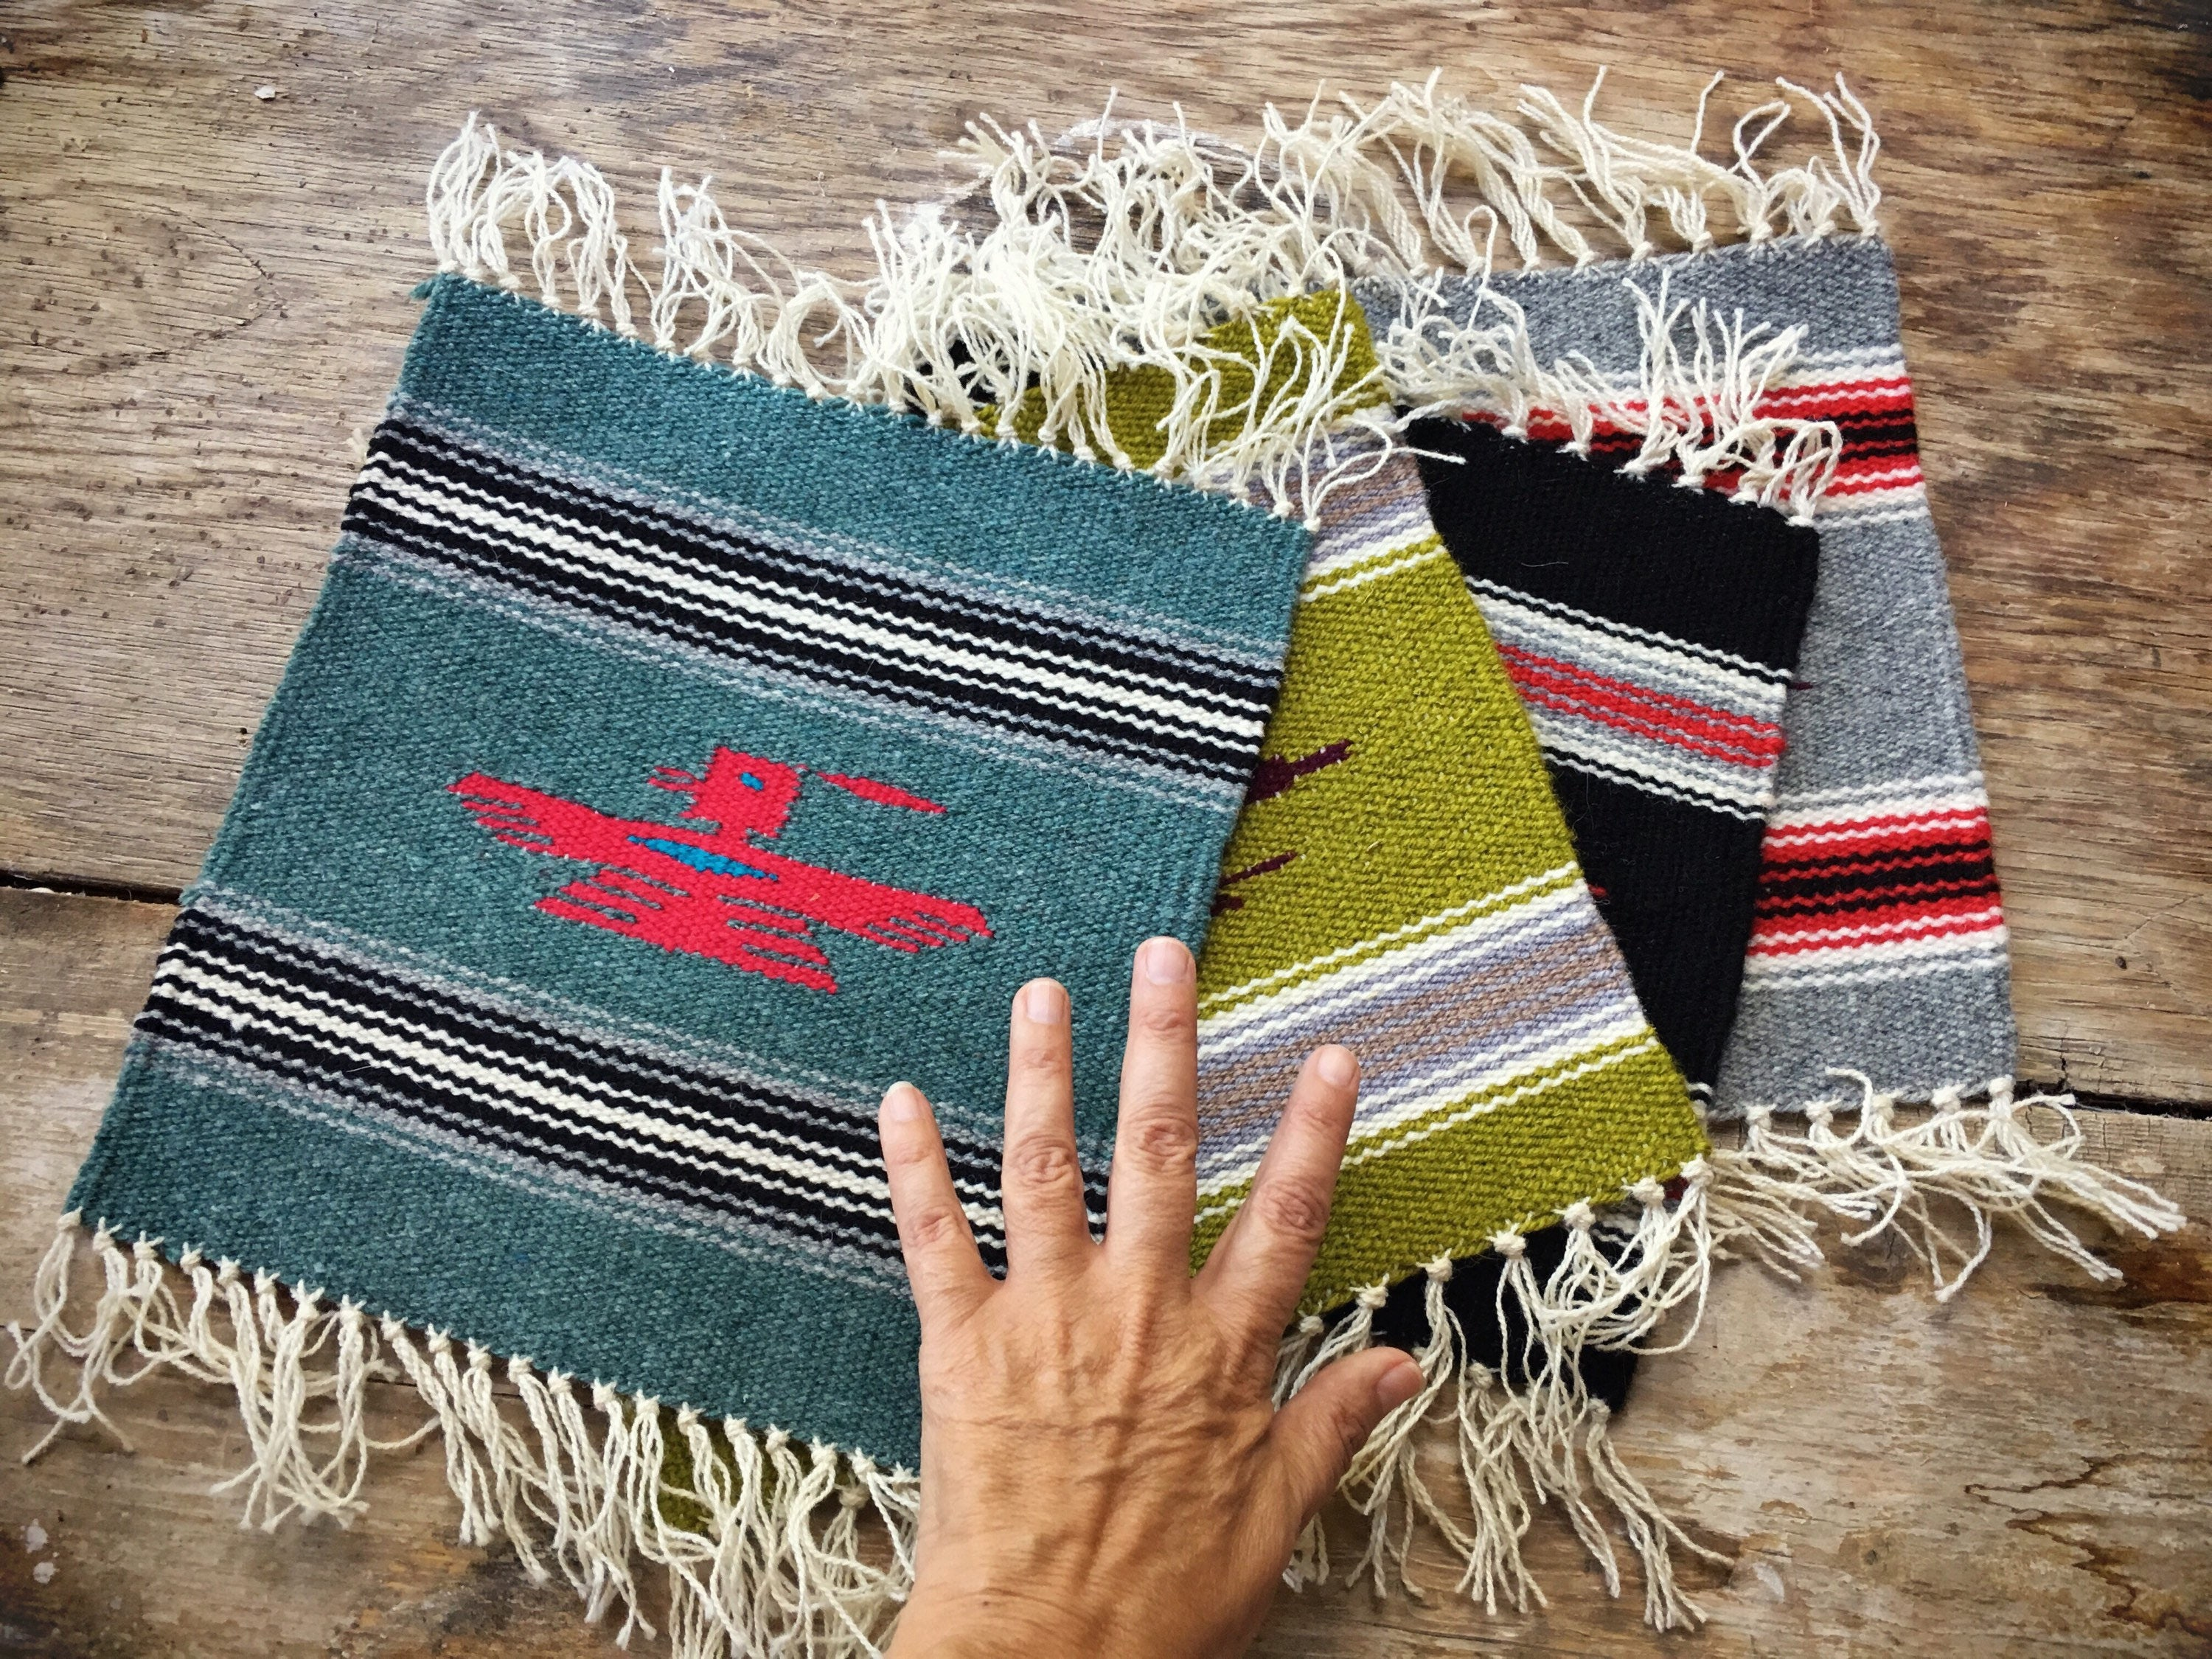 Handwoven Wool Miniature Rug Or Small Table Runner